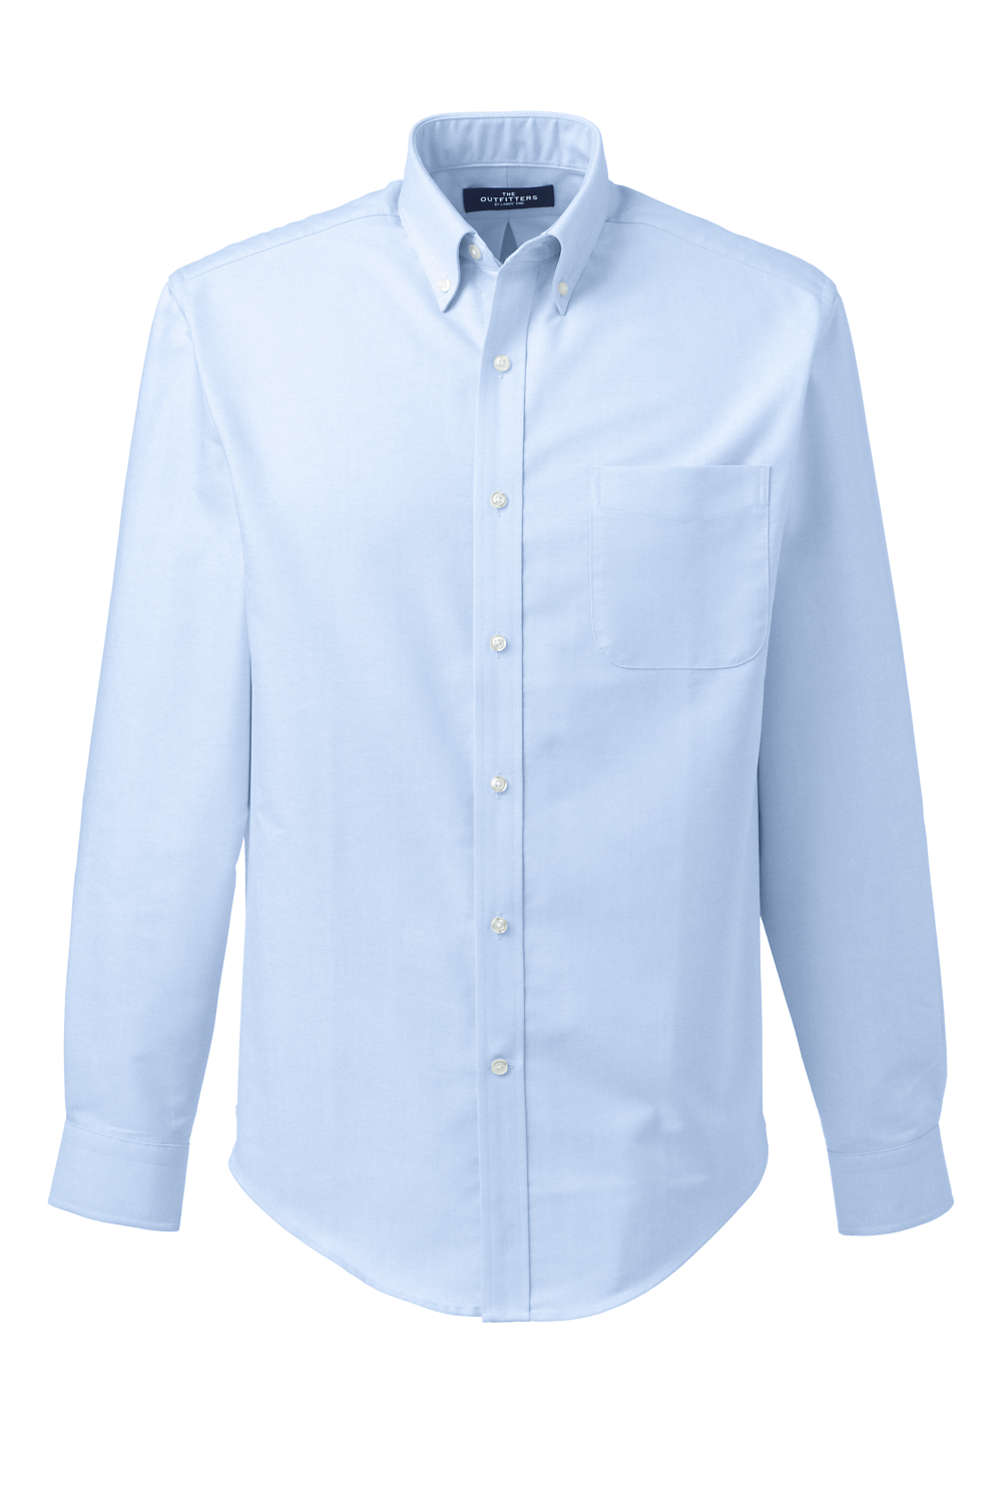 Dress Shirts Market Overview, New Opportunities & SWOT Analysis by 2025